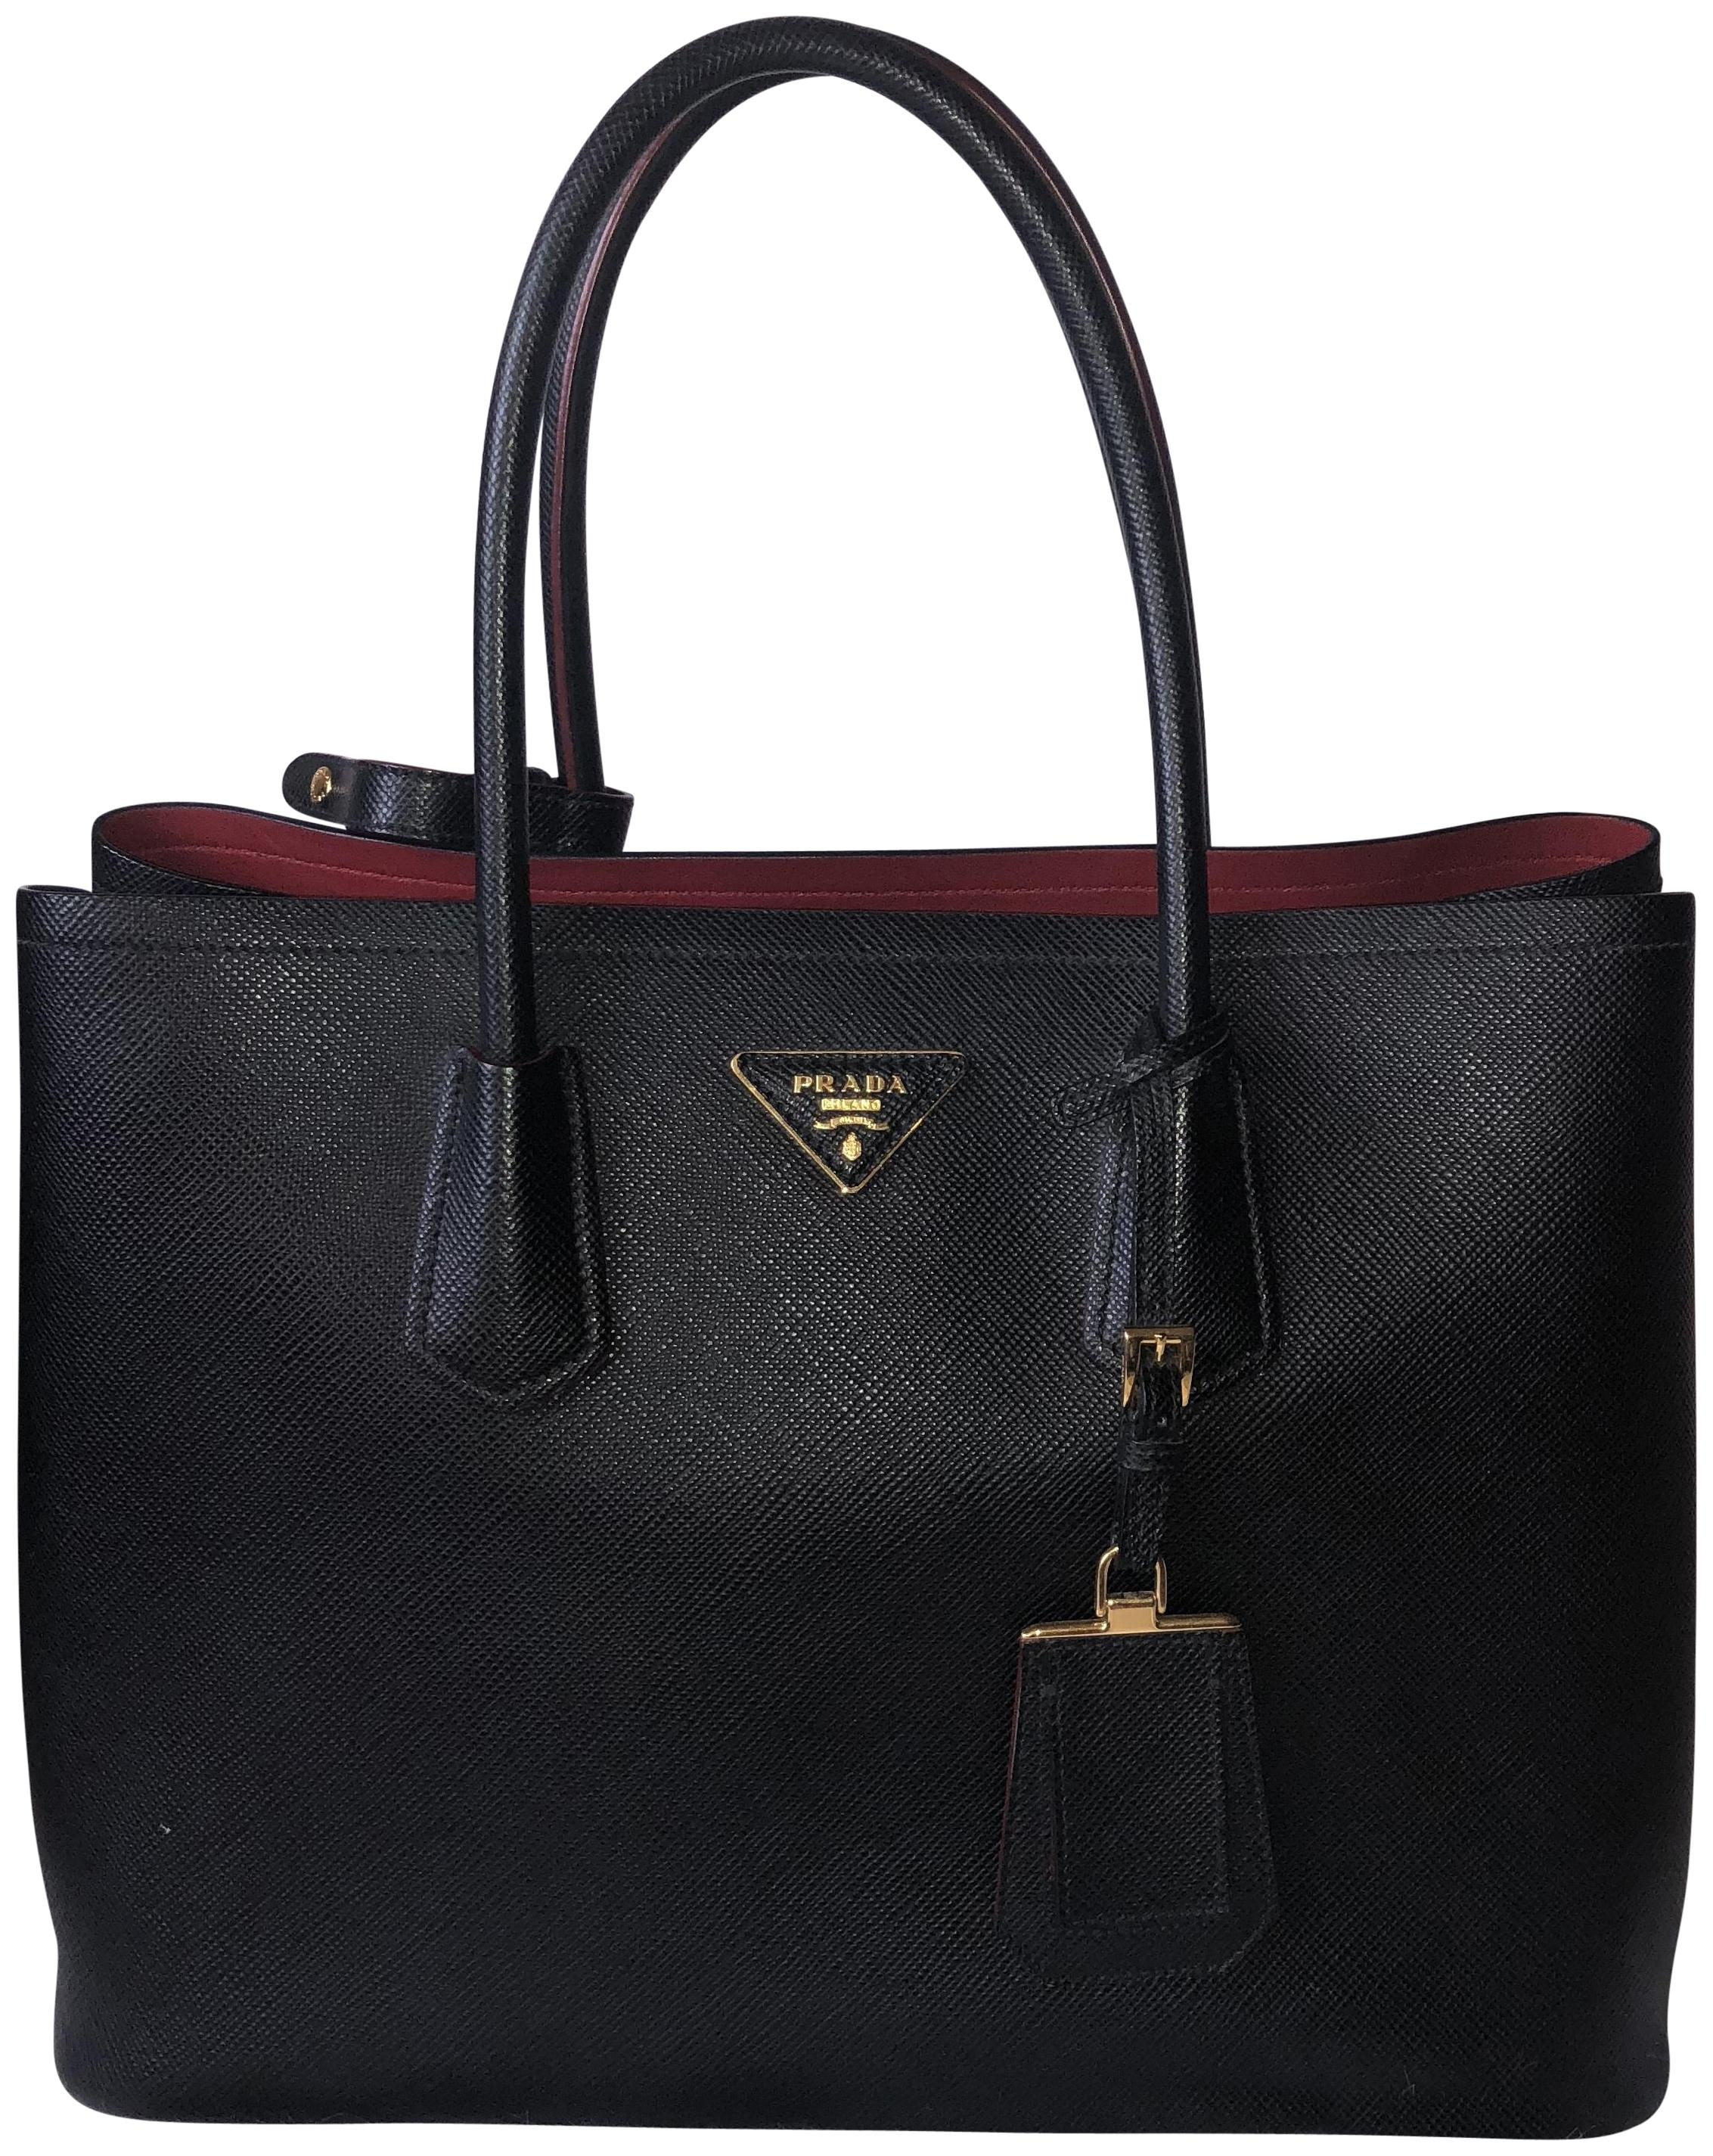 457d1fdad97 discount prada black red saffiano leather double handle tote bag bn2755  1dabb 3d3e9; free shipping prada tote in black and red 0e6a1 cdd65